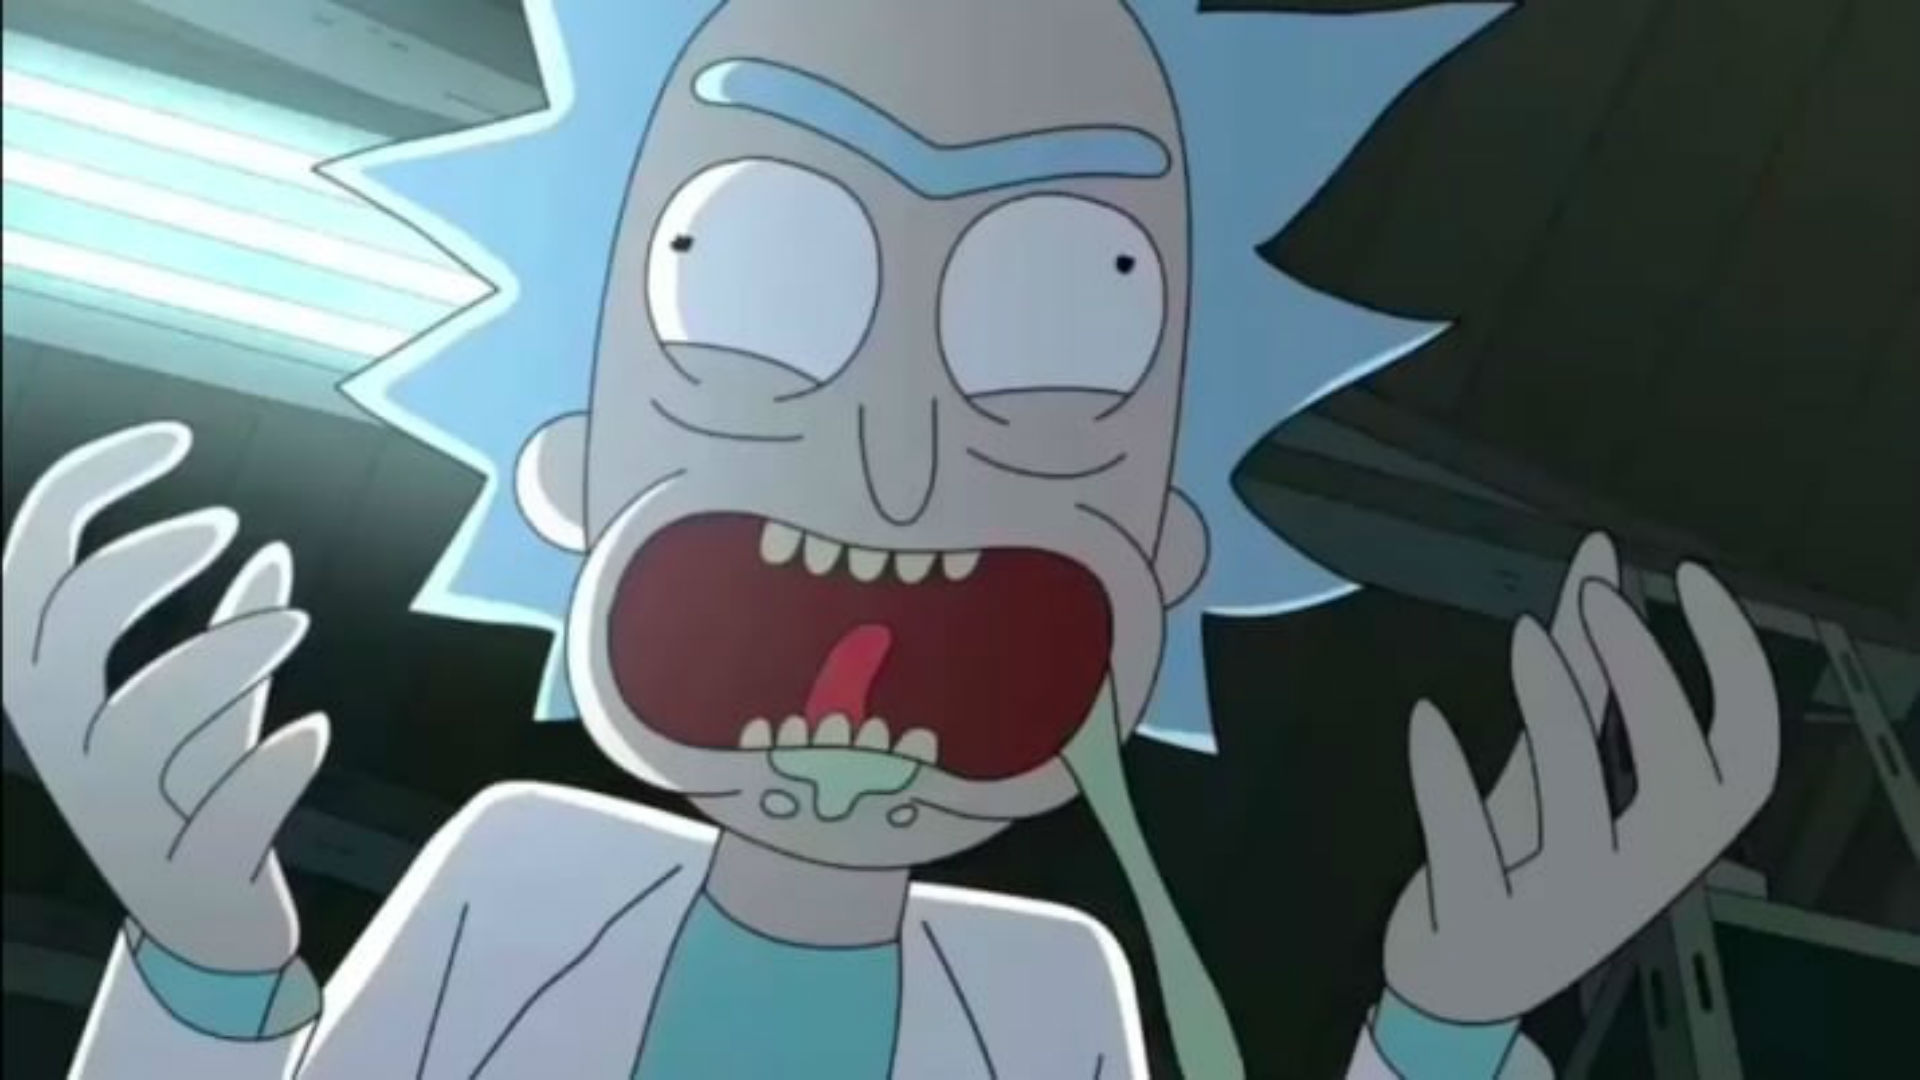 McDonald's has made Rick and Morty's Szechaun sauce joke a cruel, cruel reality screenshot